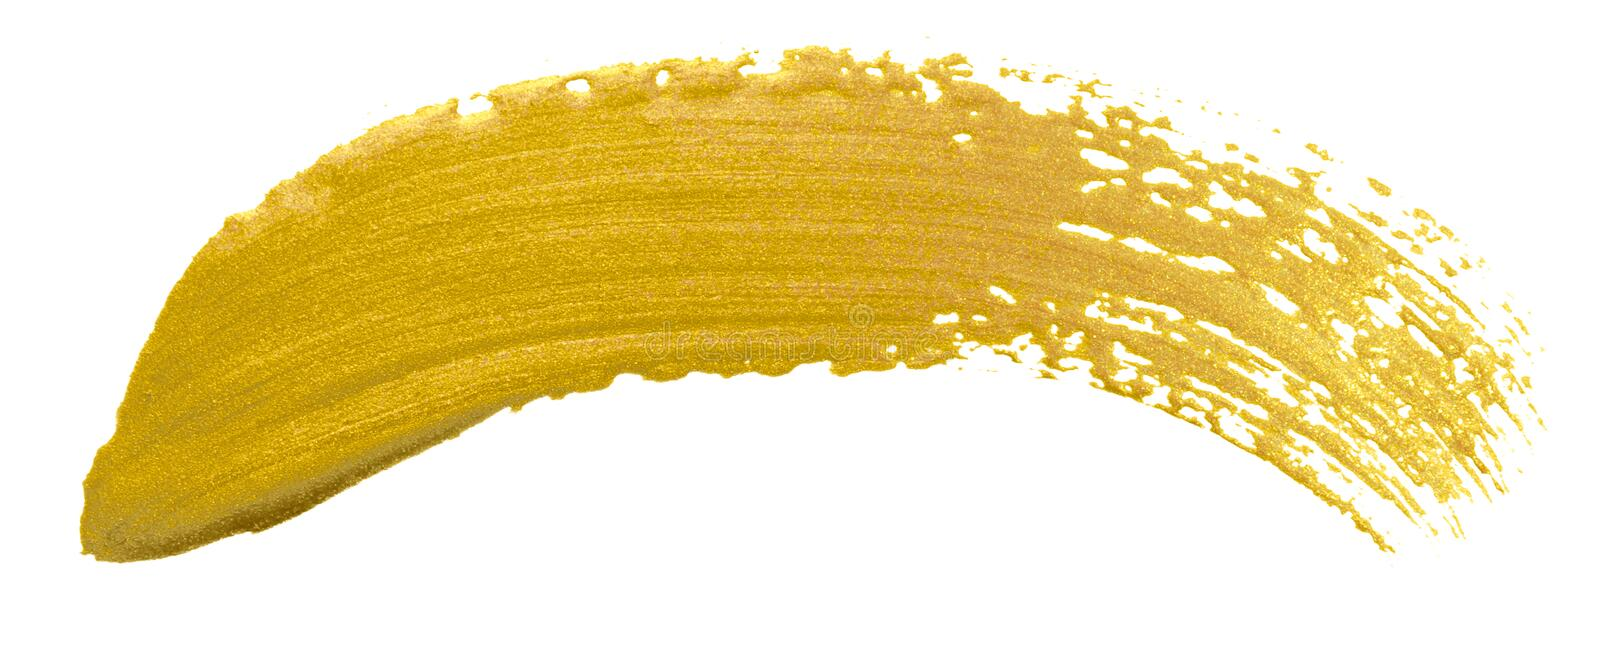 Gold color paint brush banner. Acrylic golden smear stroke stain on white background. Shine abstract detailed gold glittering text royalty free stock photography